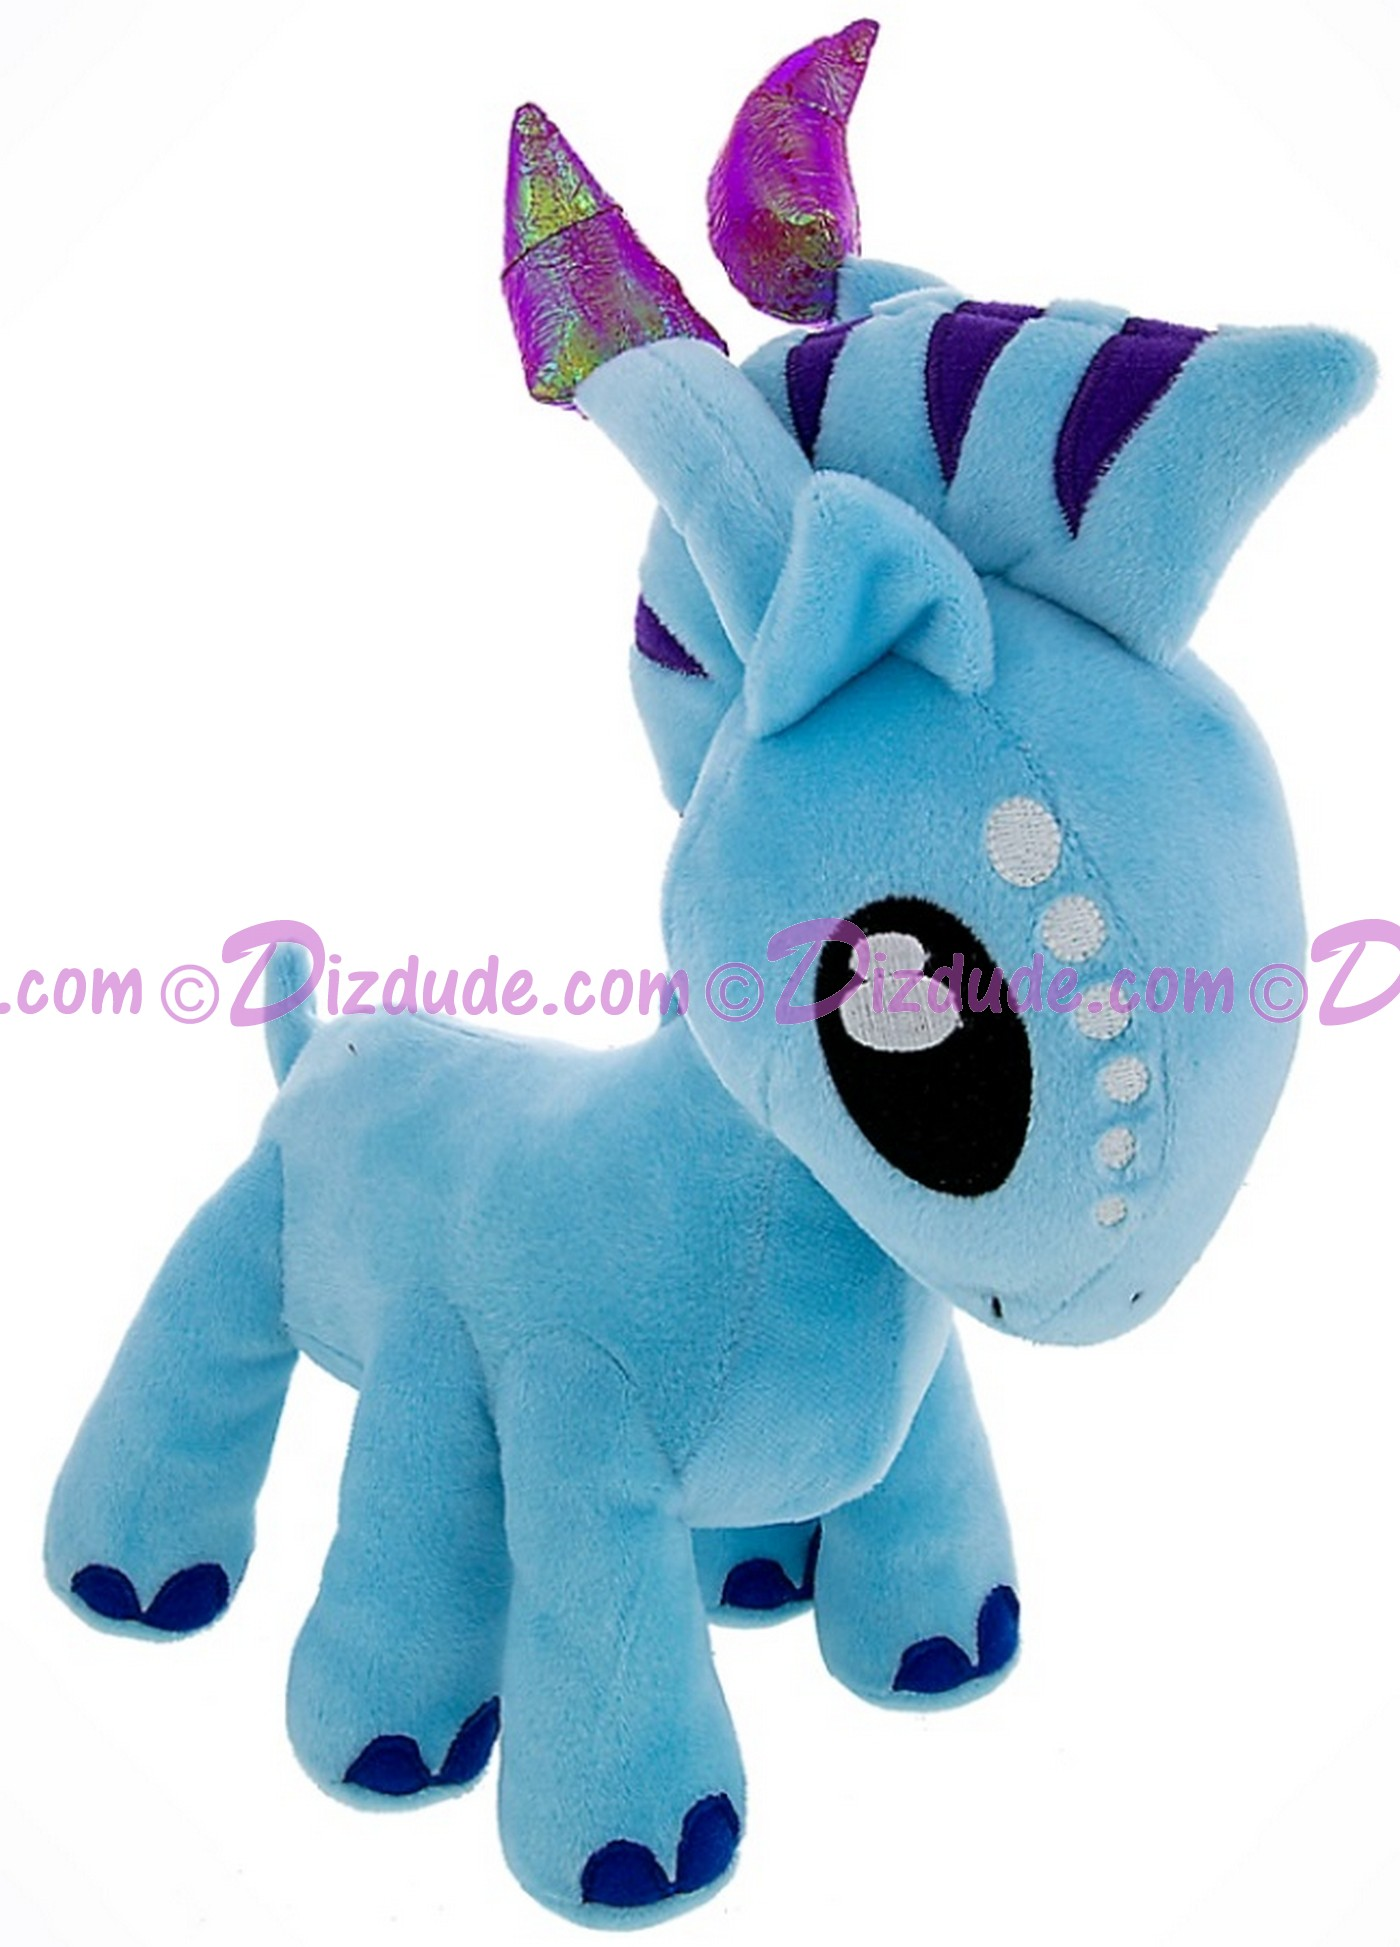 Avatar Direhorse Plush 9 Inch (23 cm) - Disney Pandora – The World of Avatar © Dizdude.com